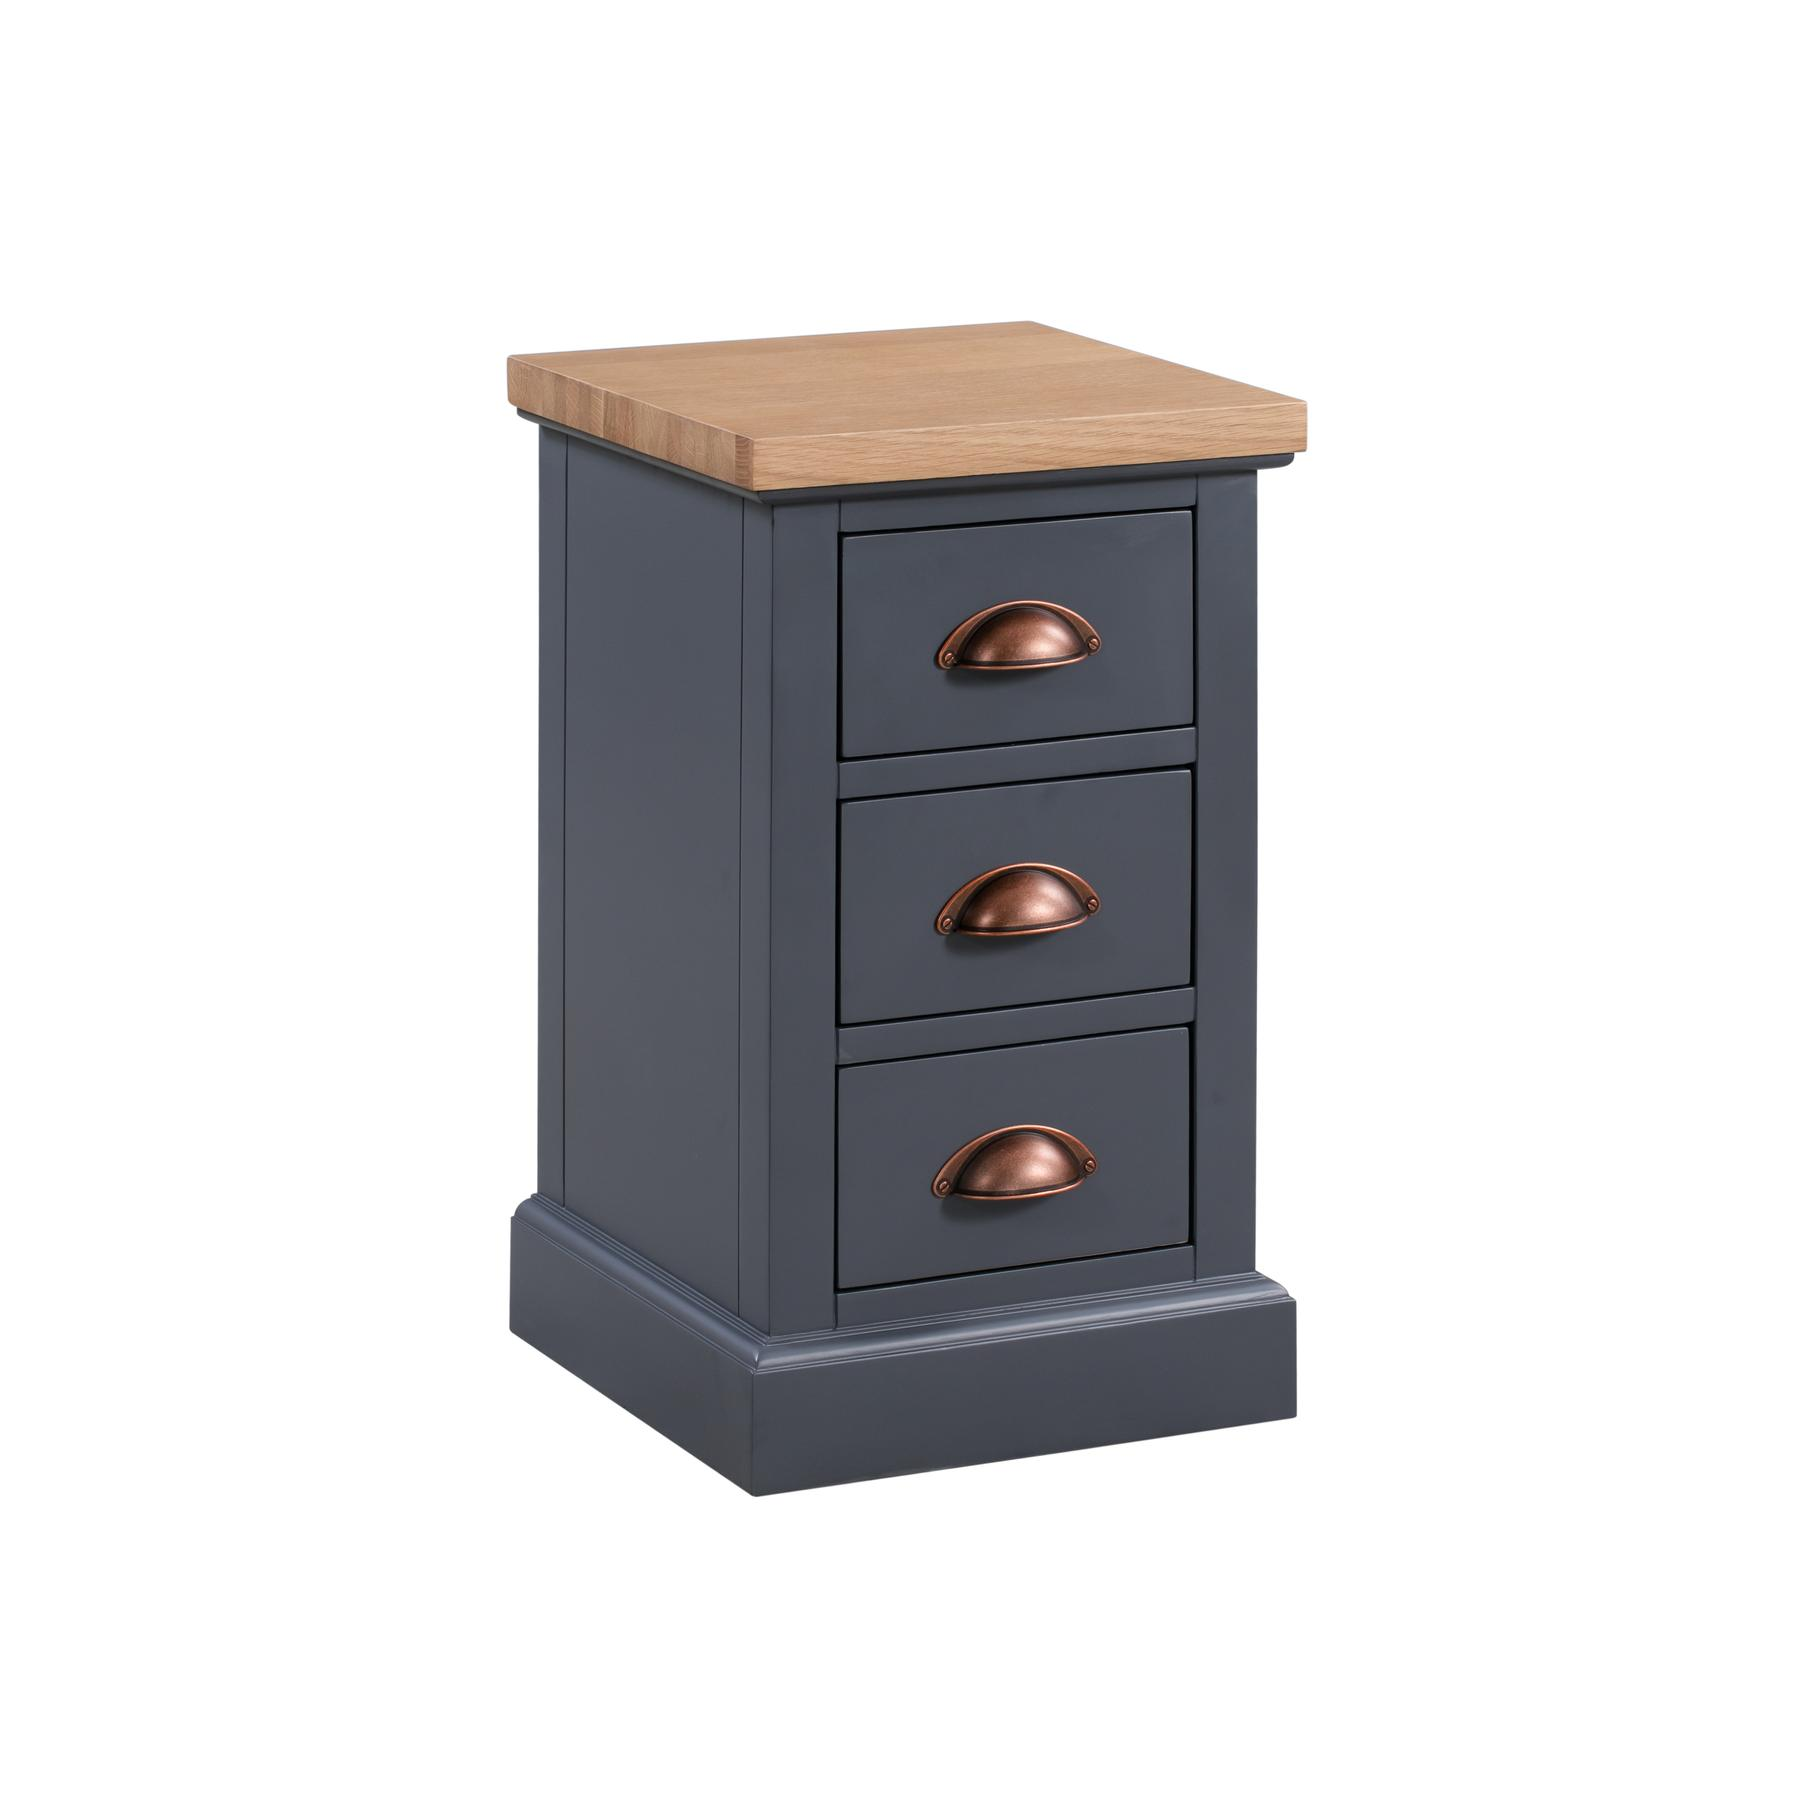 The Richmond Oak Collection Three Drawer Bedside